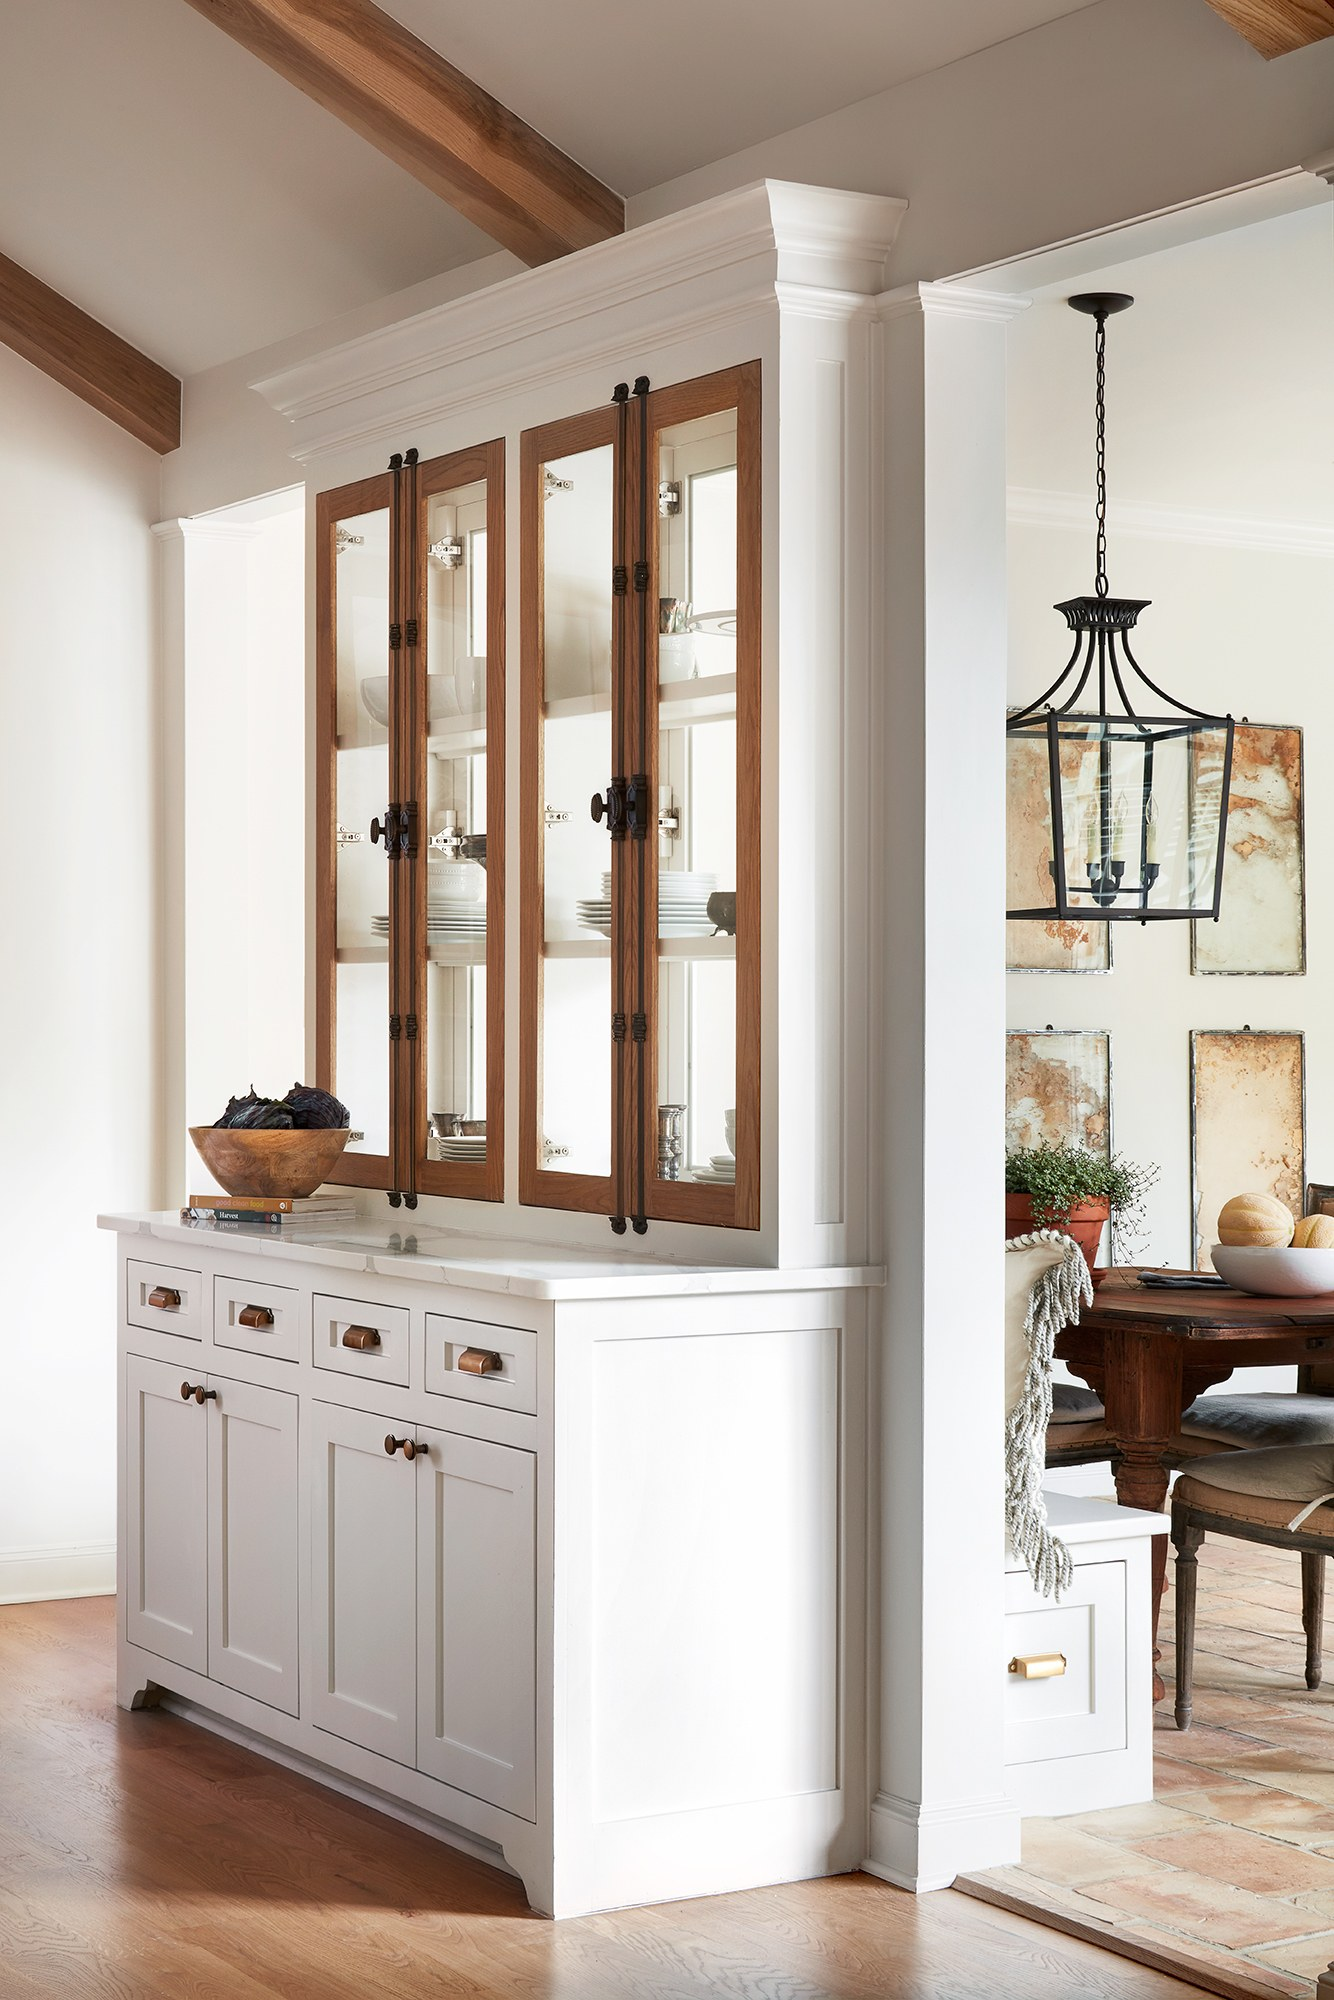 "If you watched ""The Club House"" episode of HGTV's Fixer Upper and loved the French country kitchen, come explore resources and decorating ideas for getting the look! #frenchcountry #fixerupper #theclubhouse #kitchen"